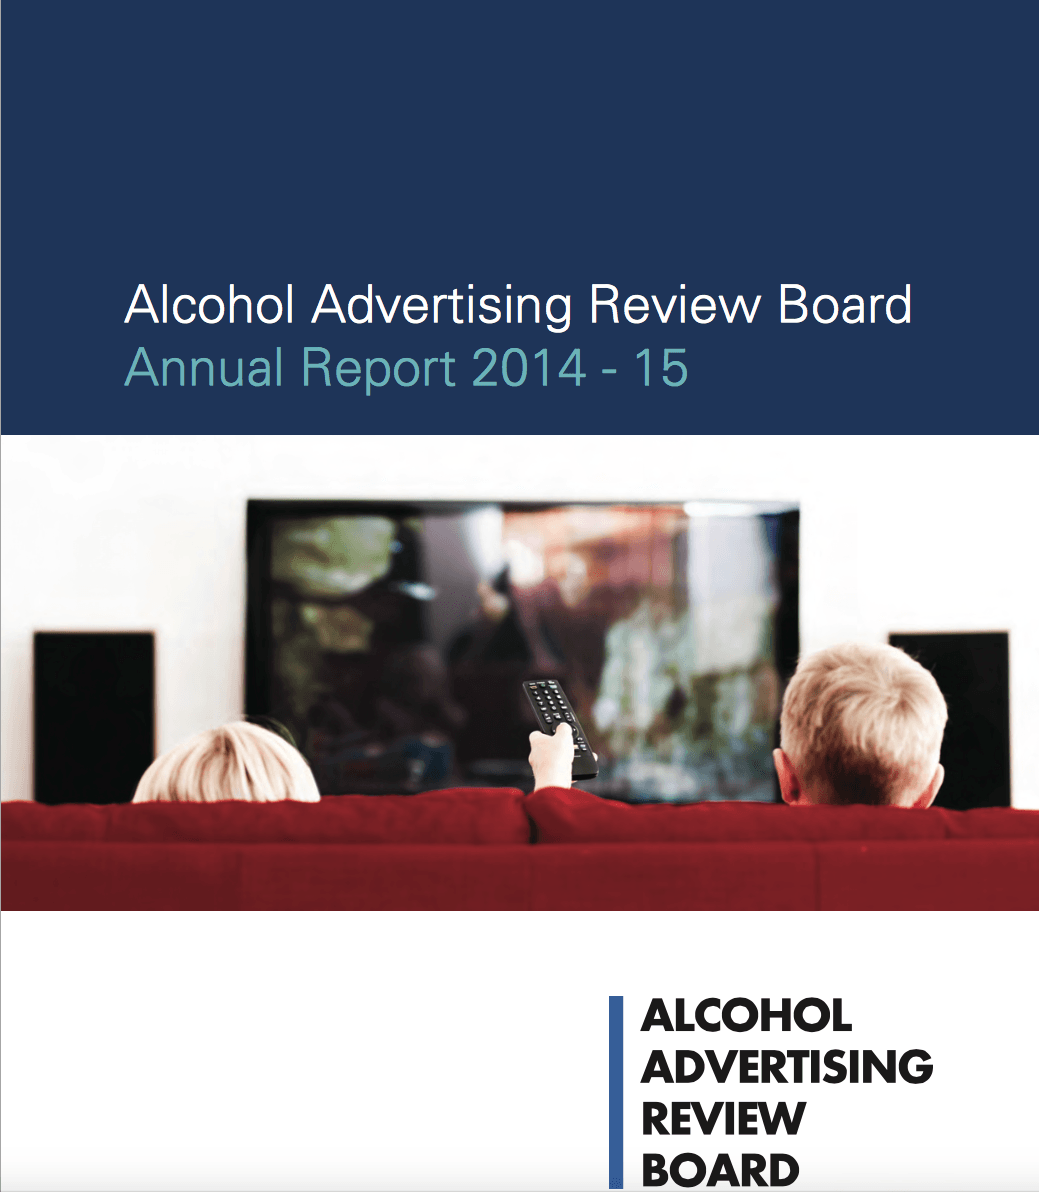 Alcohol advertising: the time has come for independent regulation